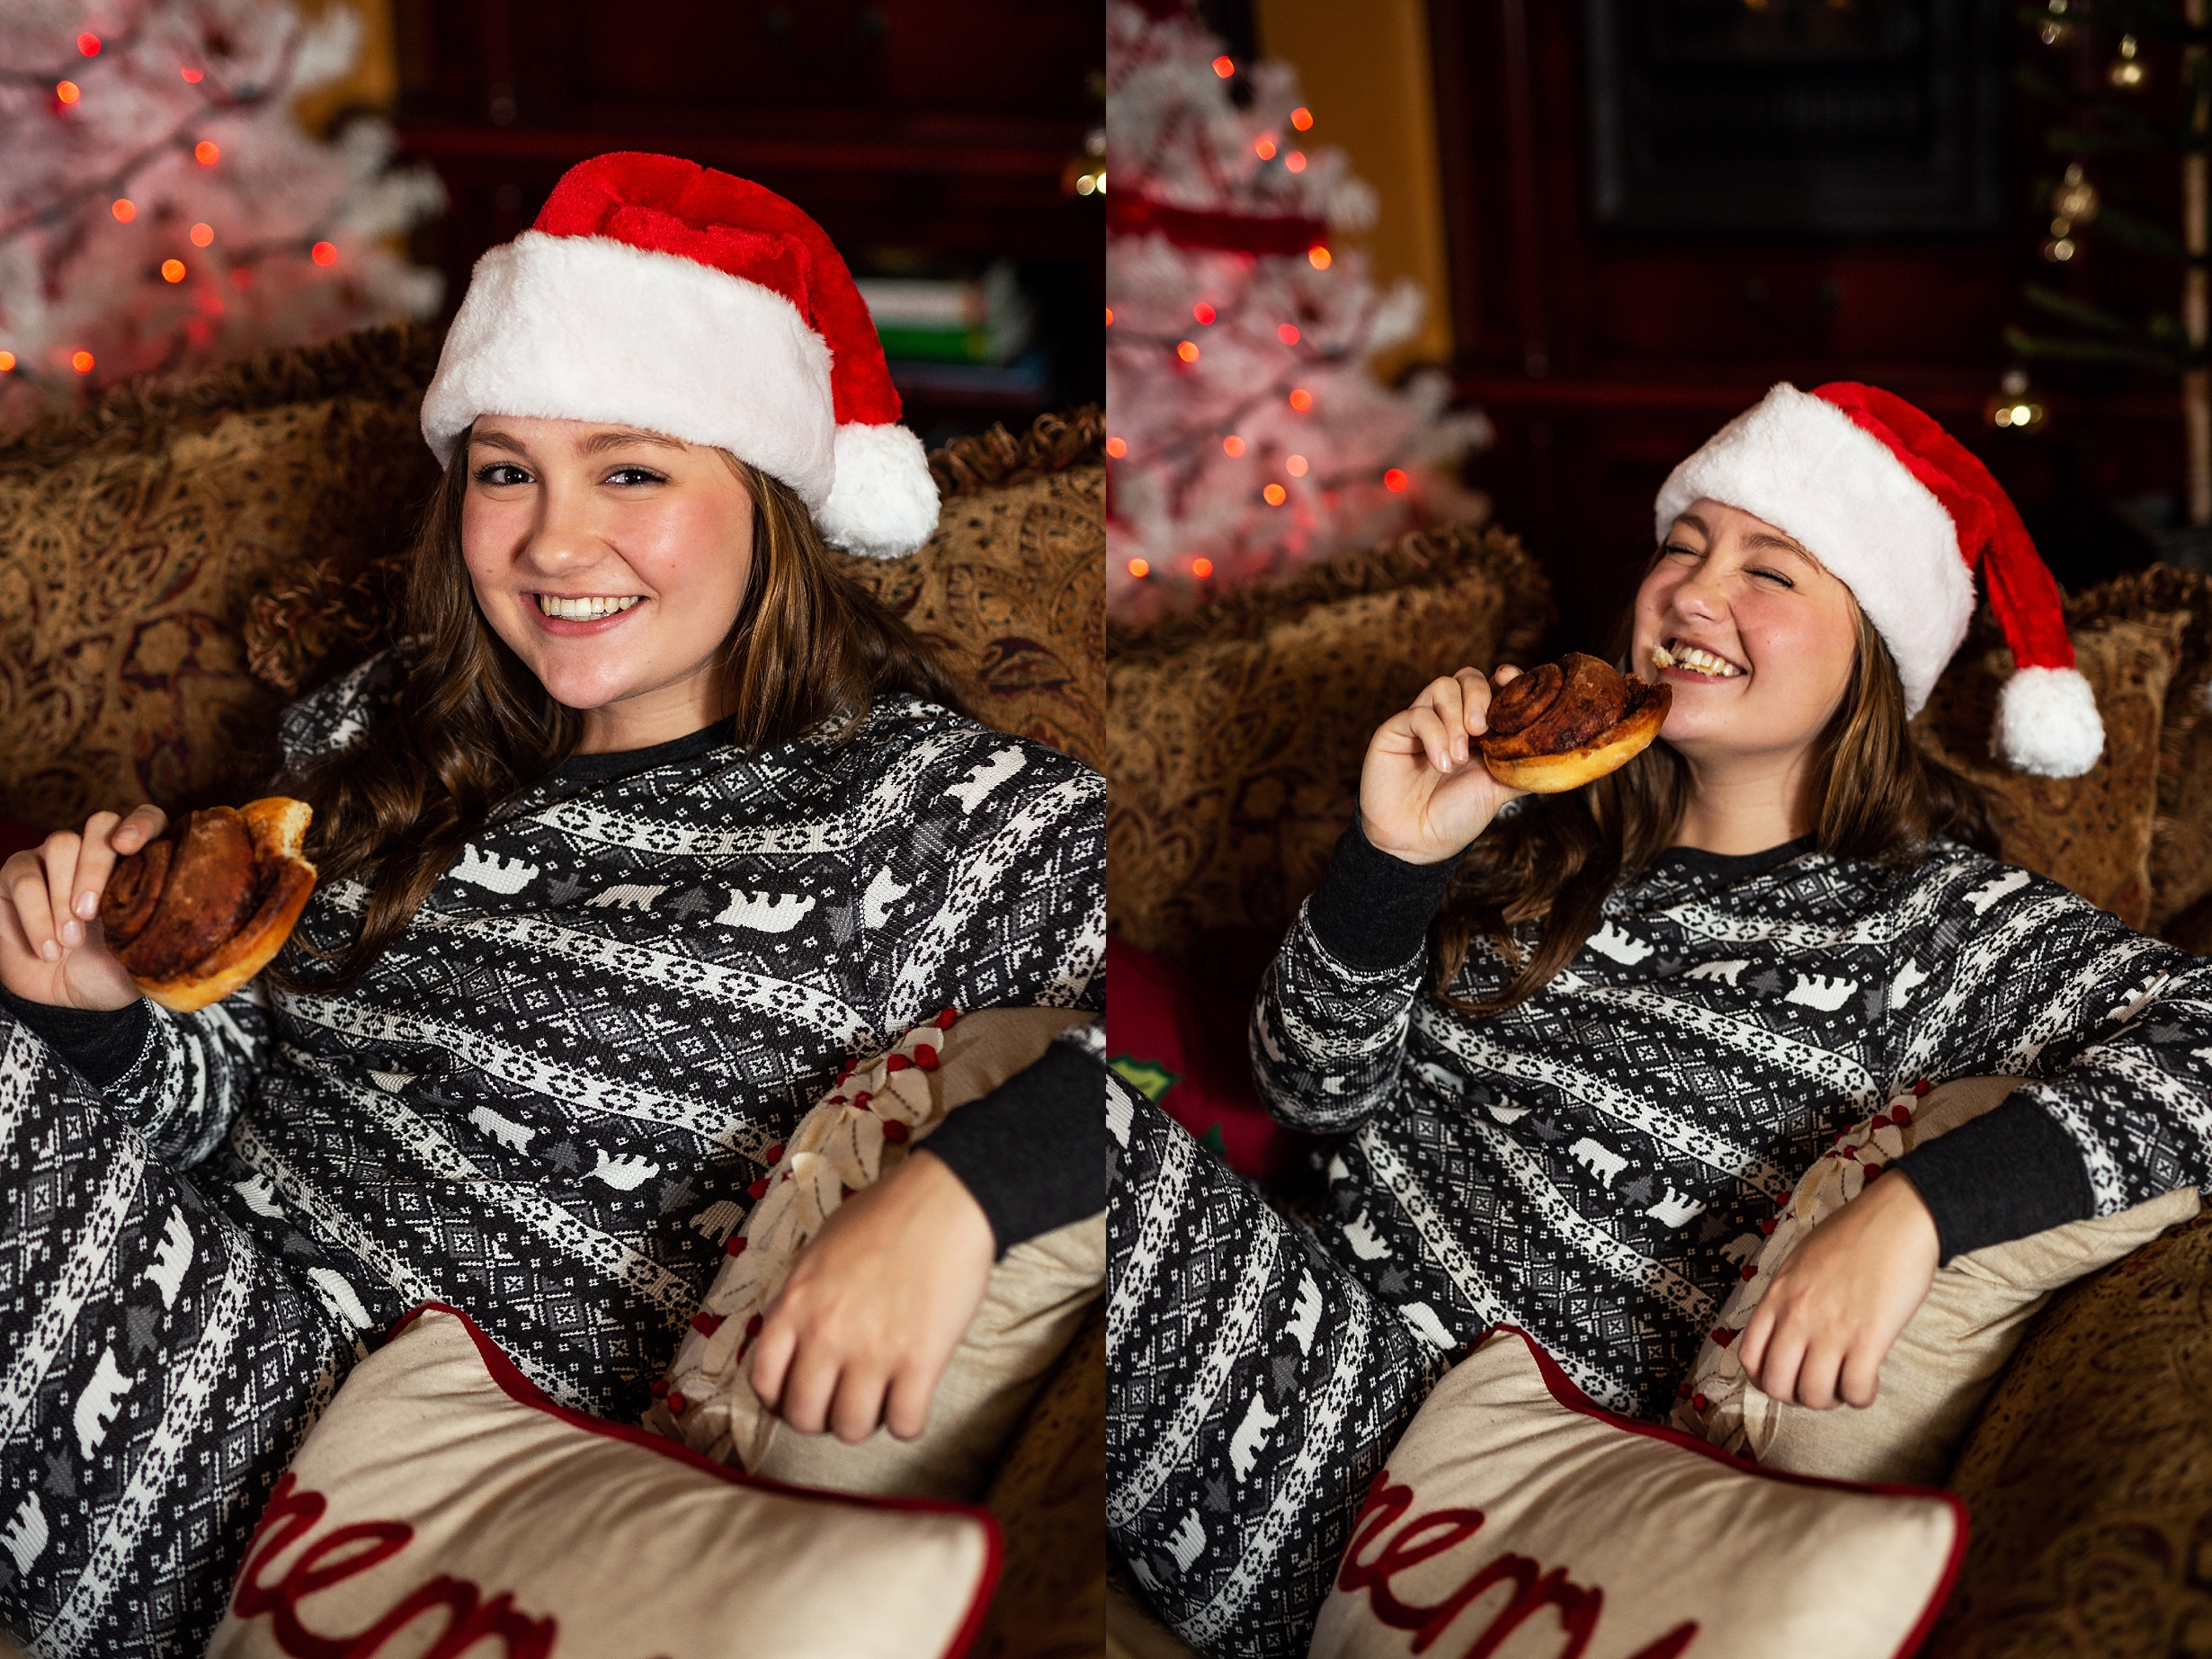 Blake Tonkin, 2019 VIP Representative, eating a freshly bake cinnamon roll at the christmas pajama party and photoshoot